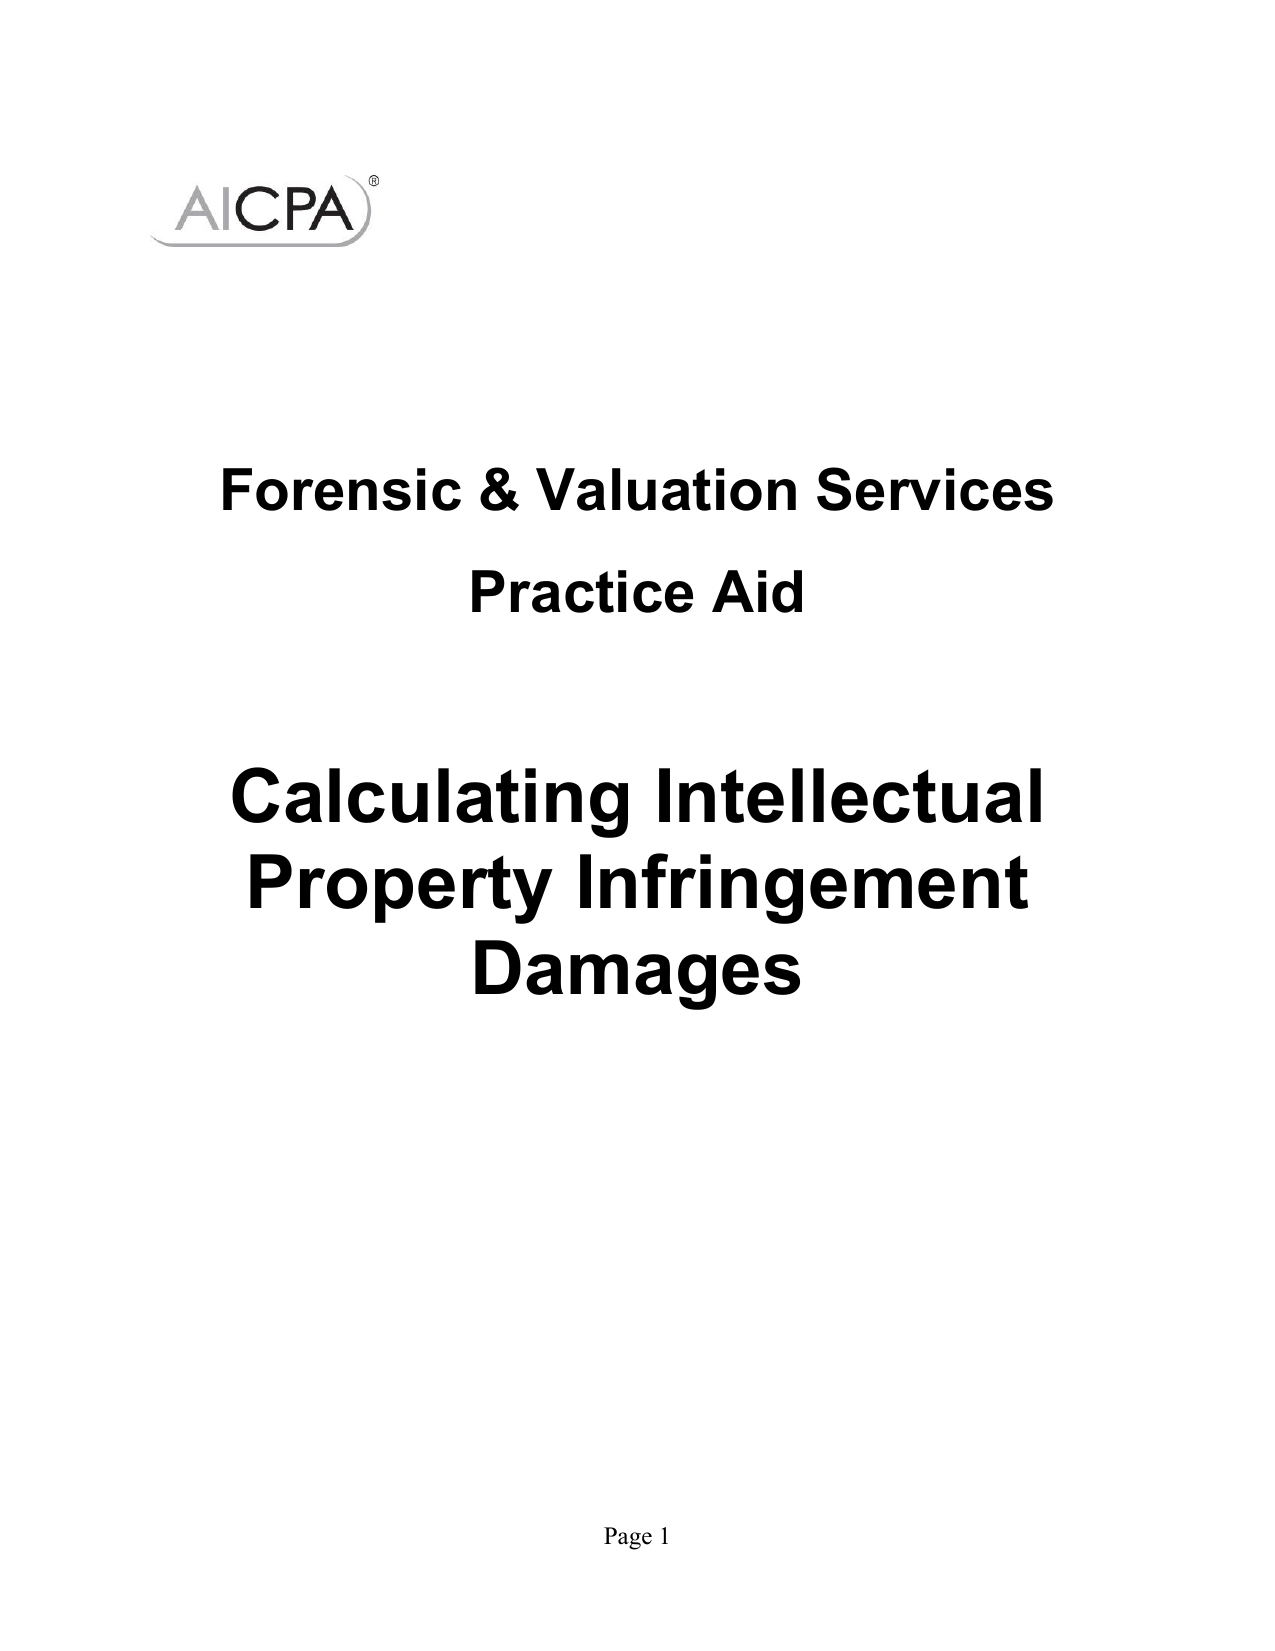 Calculating Intellectual Property Infringement Damages